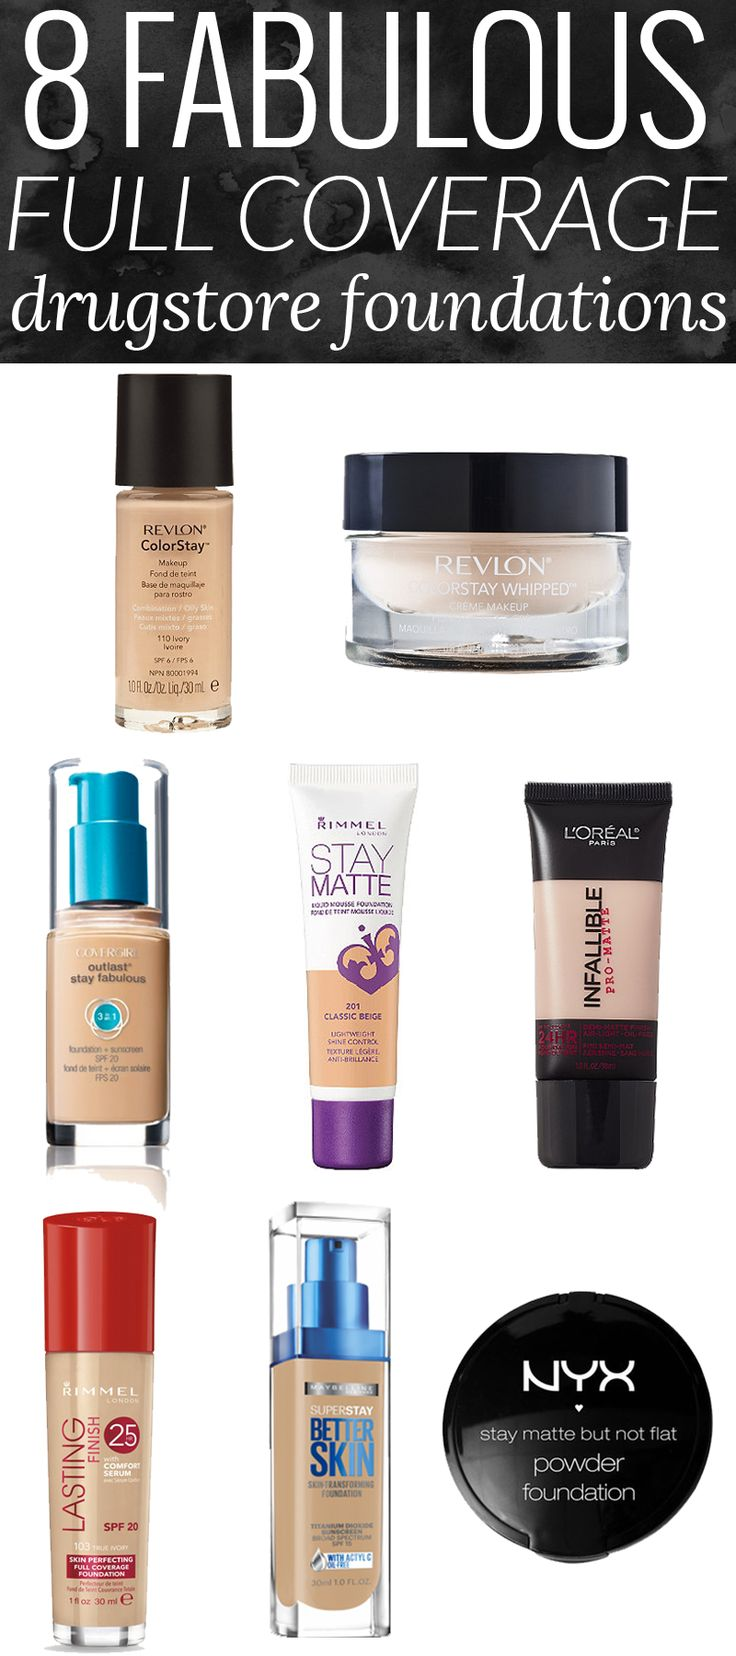 8 Fabulous Full Coverage Drugstore Foundations - these are some of my absolute favorite full coverage foundations, period!